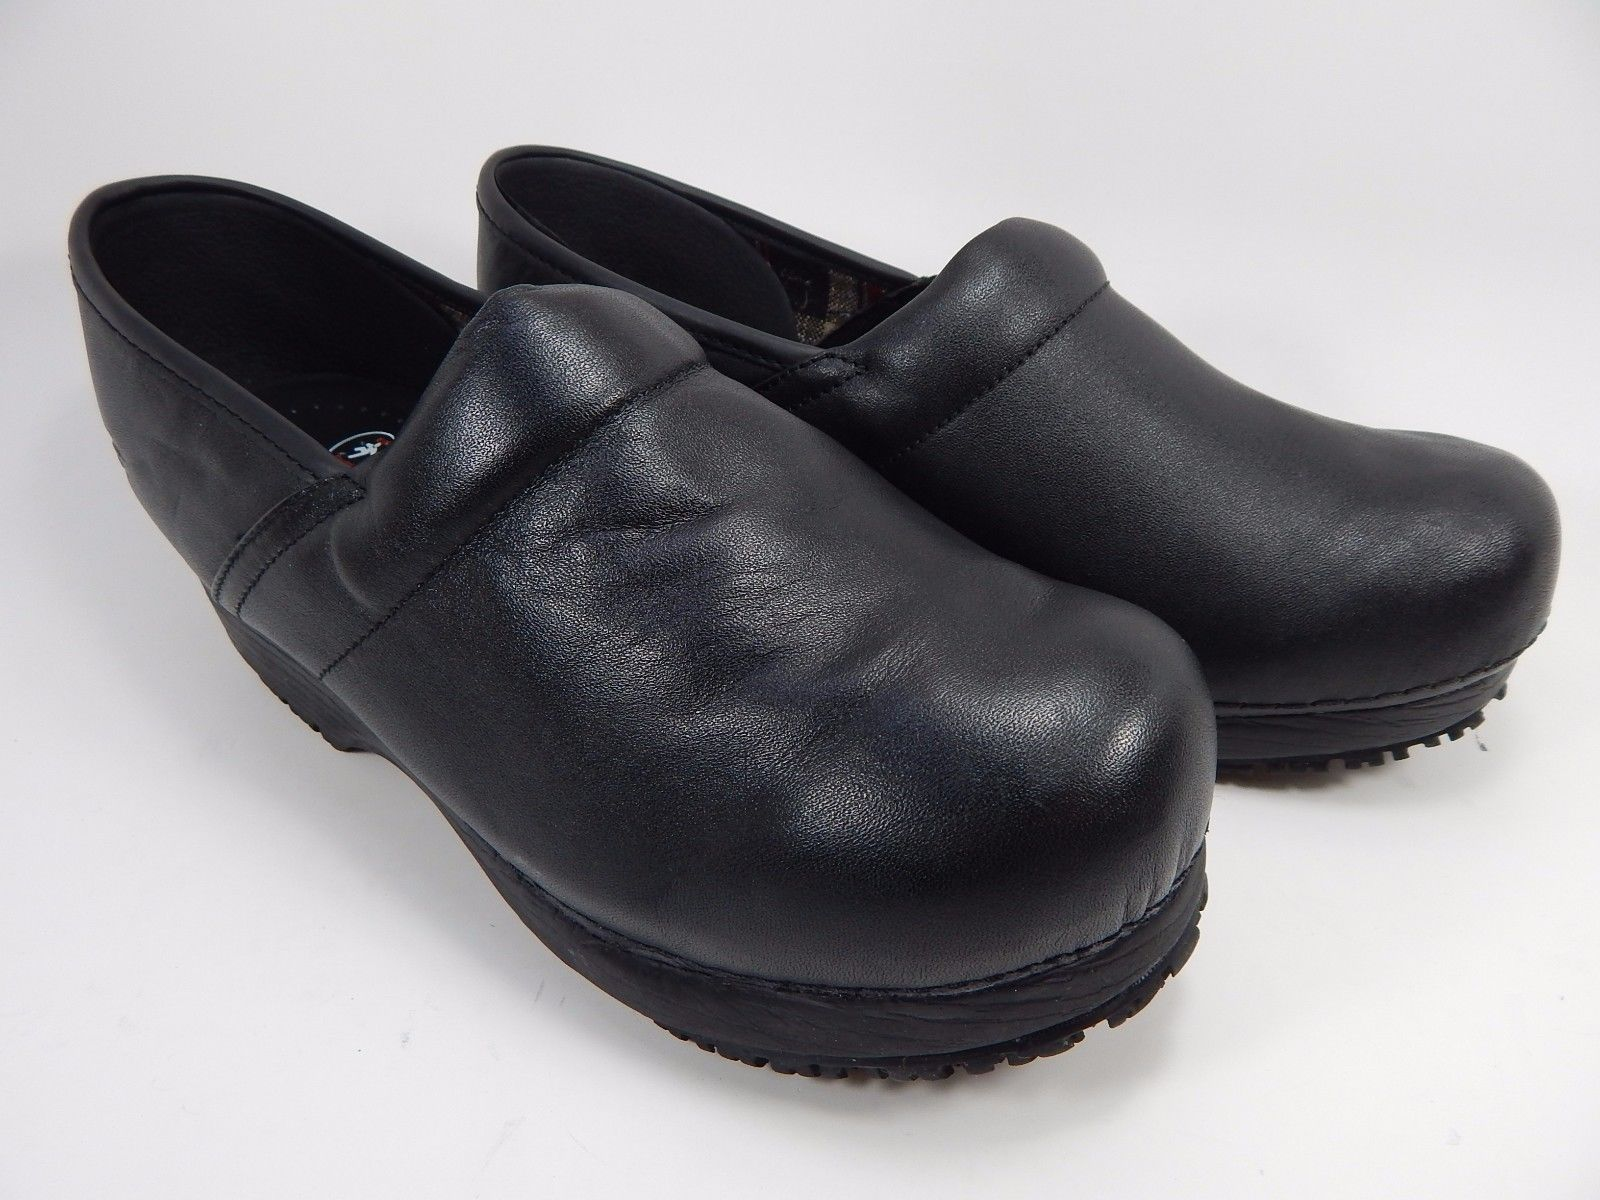 Skechers Tone-Ups Women's Work Slip Resistant Clogs Shoes 8 M (B) EU 38 Black